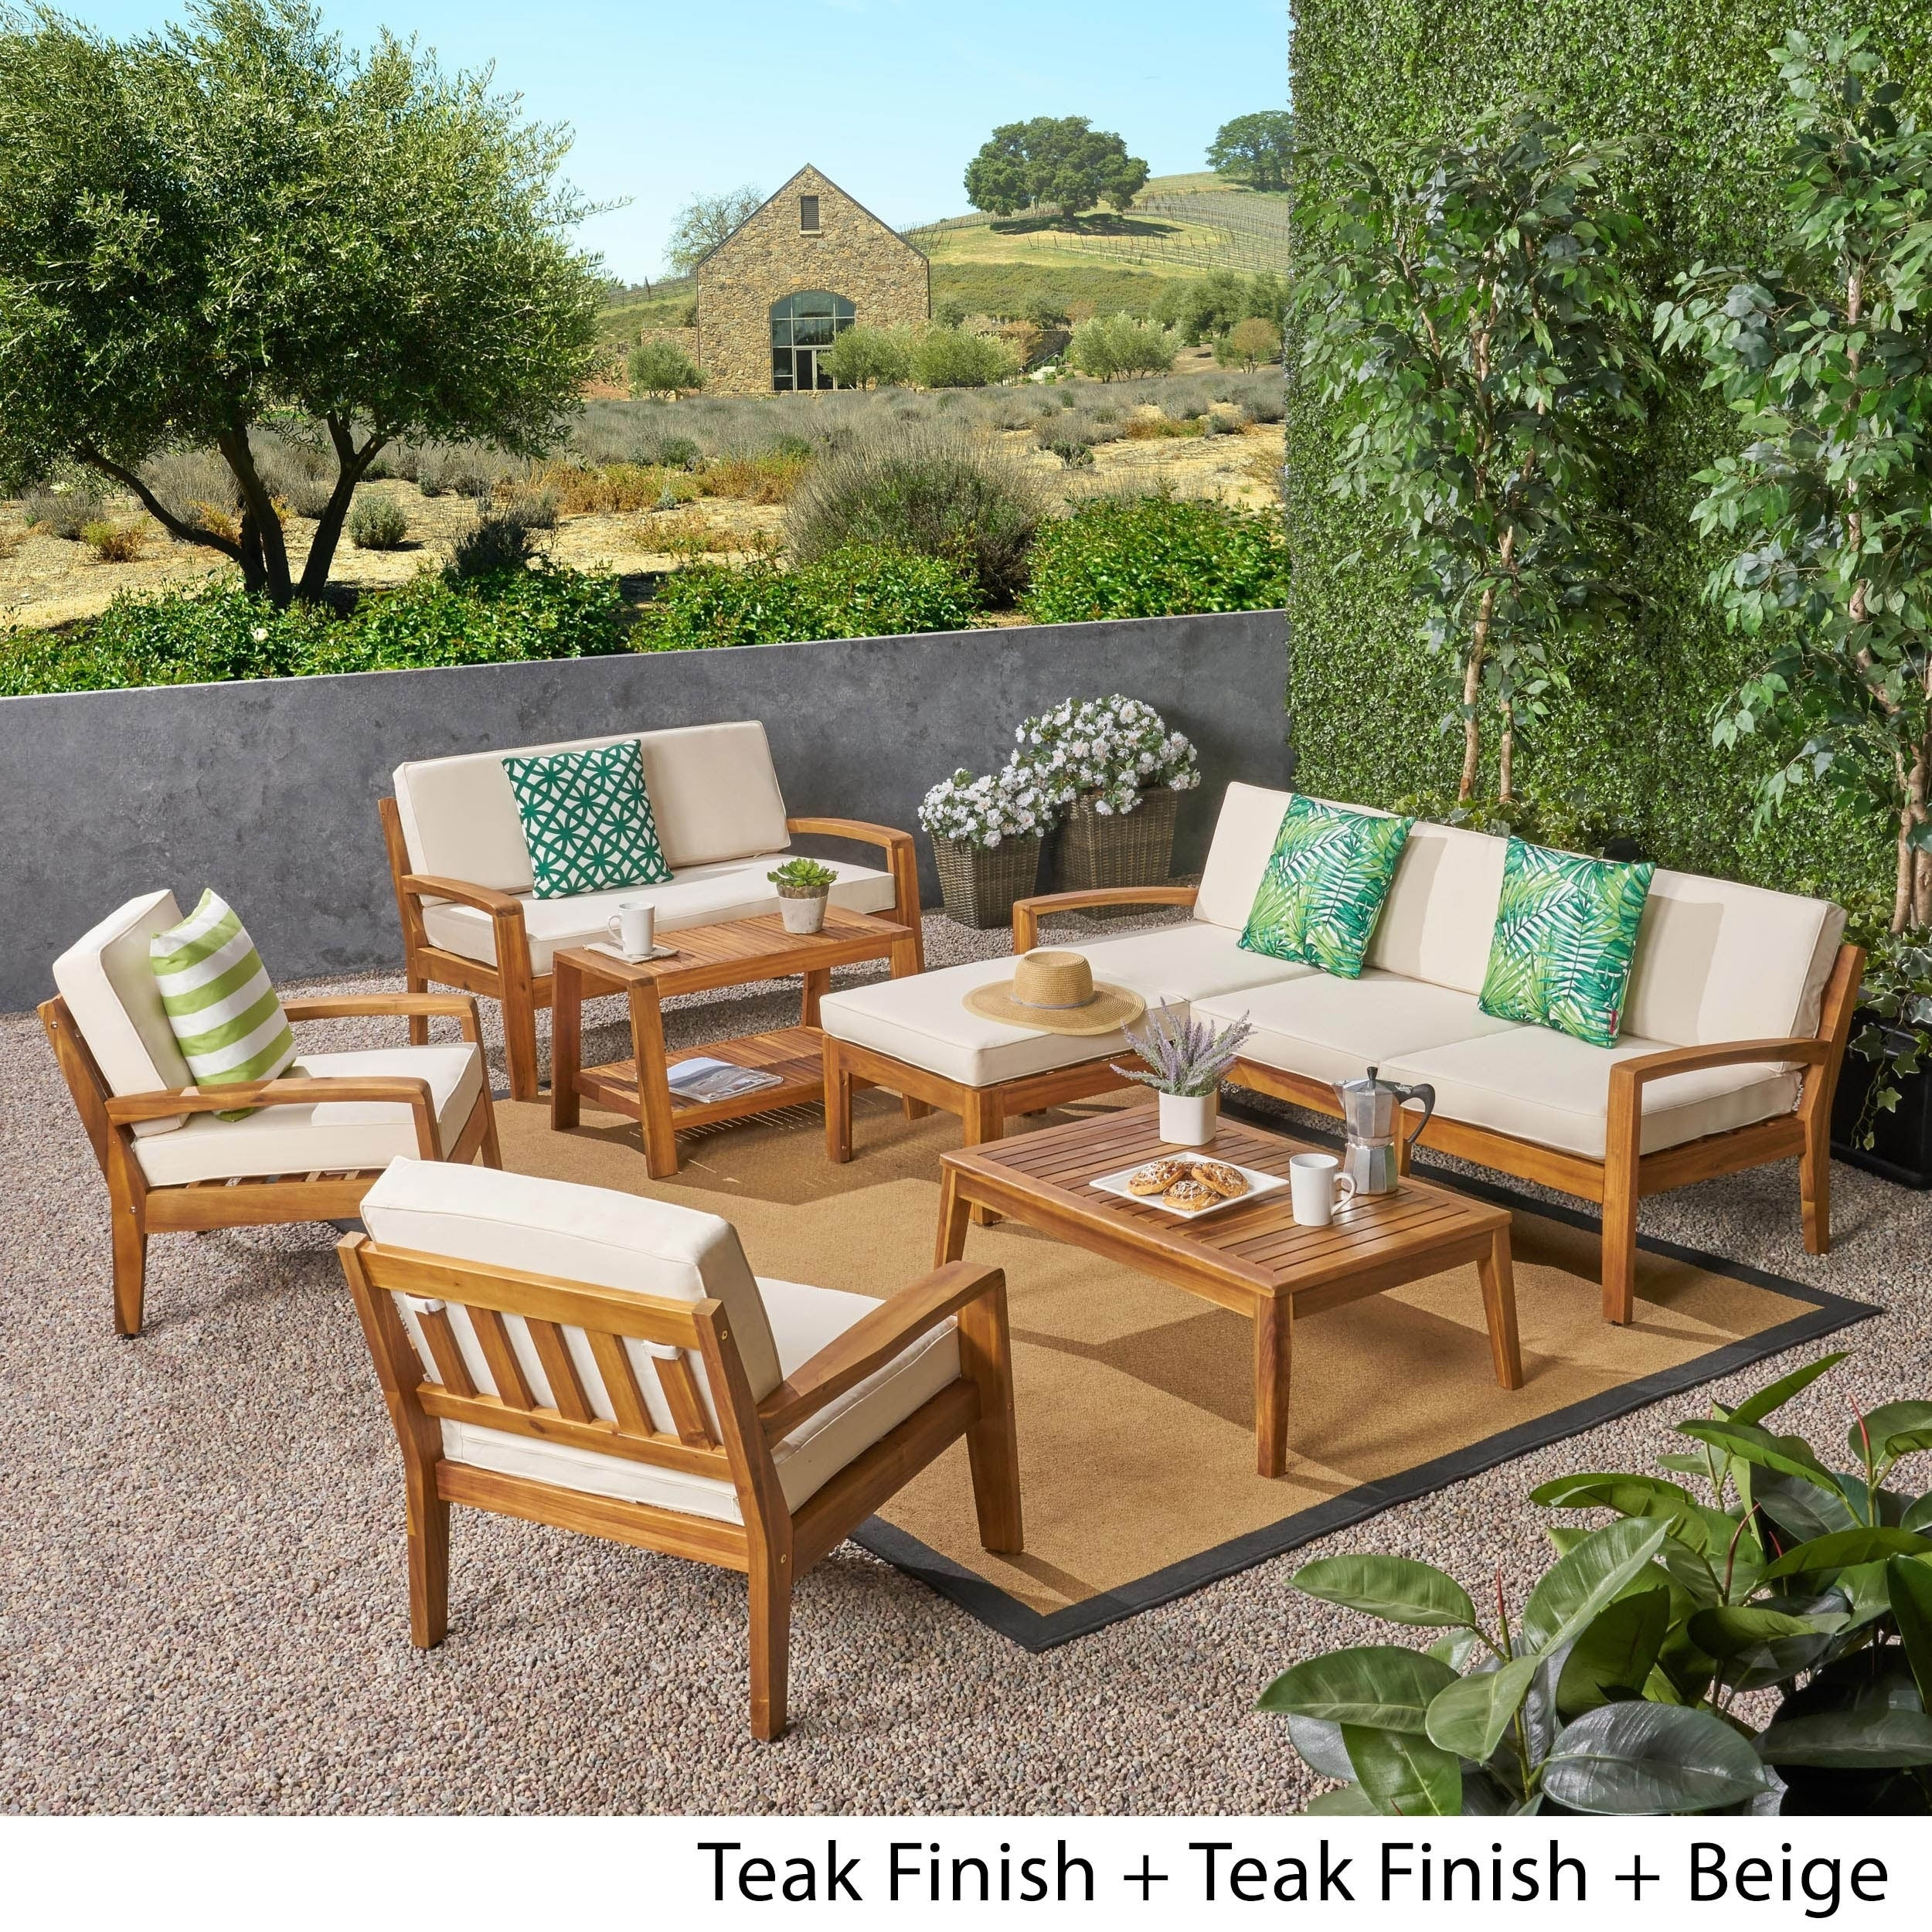 Grenada Outdoor 7 Seater Acacia Wood Sectional Sofa Set By Christopher Knight Home